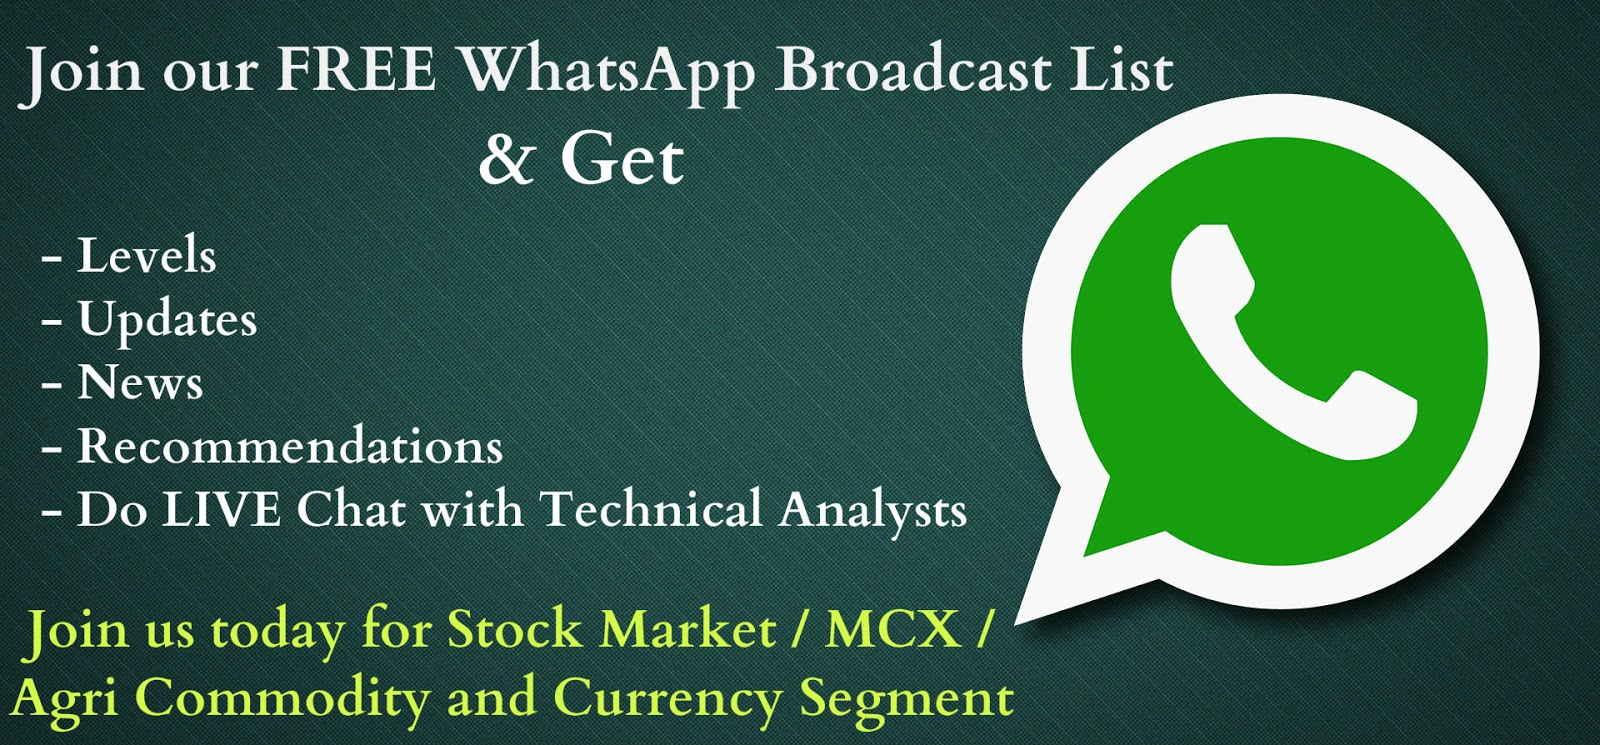 Stock Market Update on WhatsApp